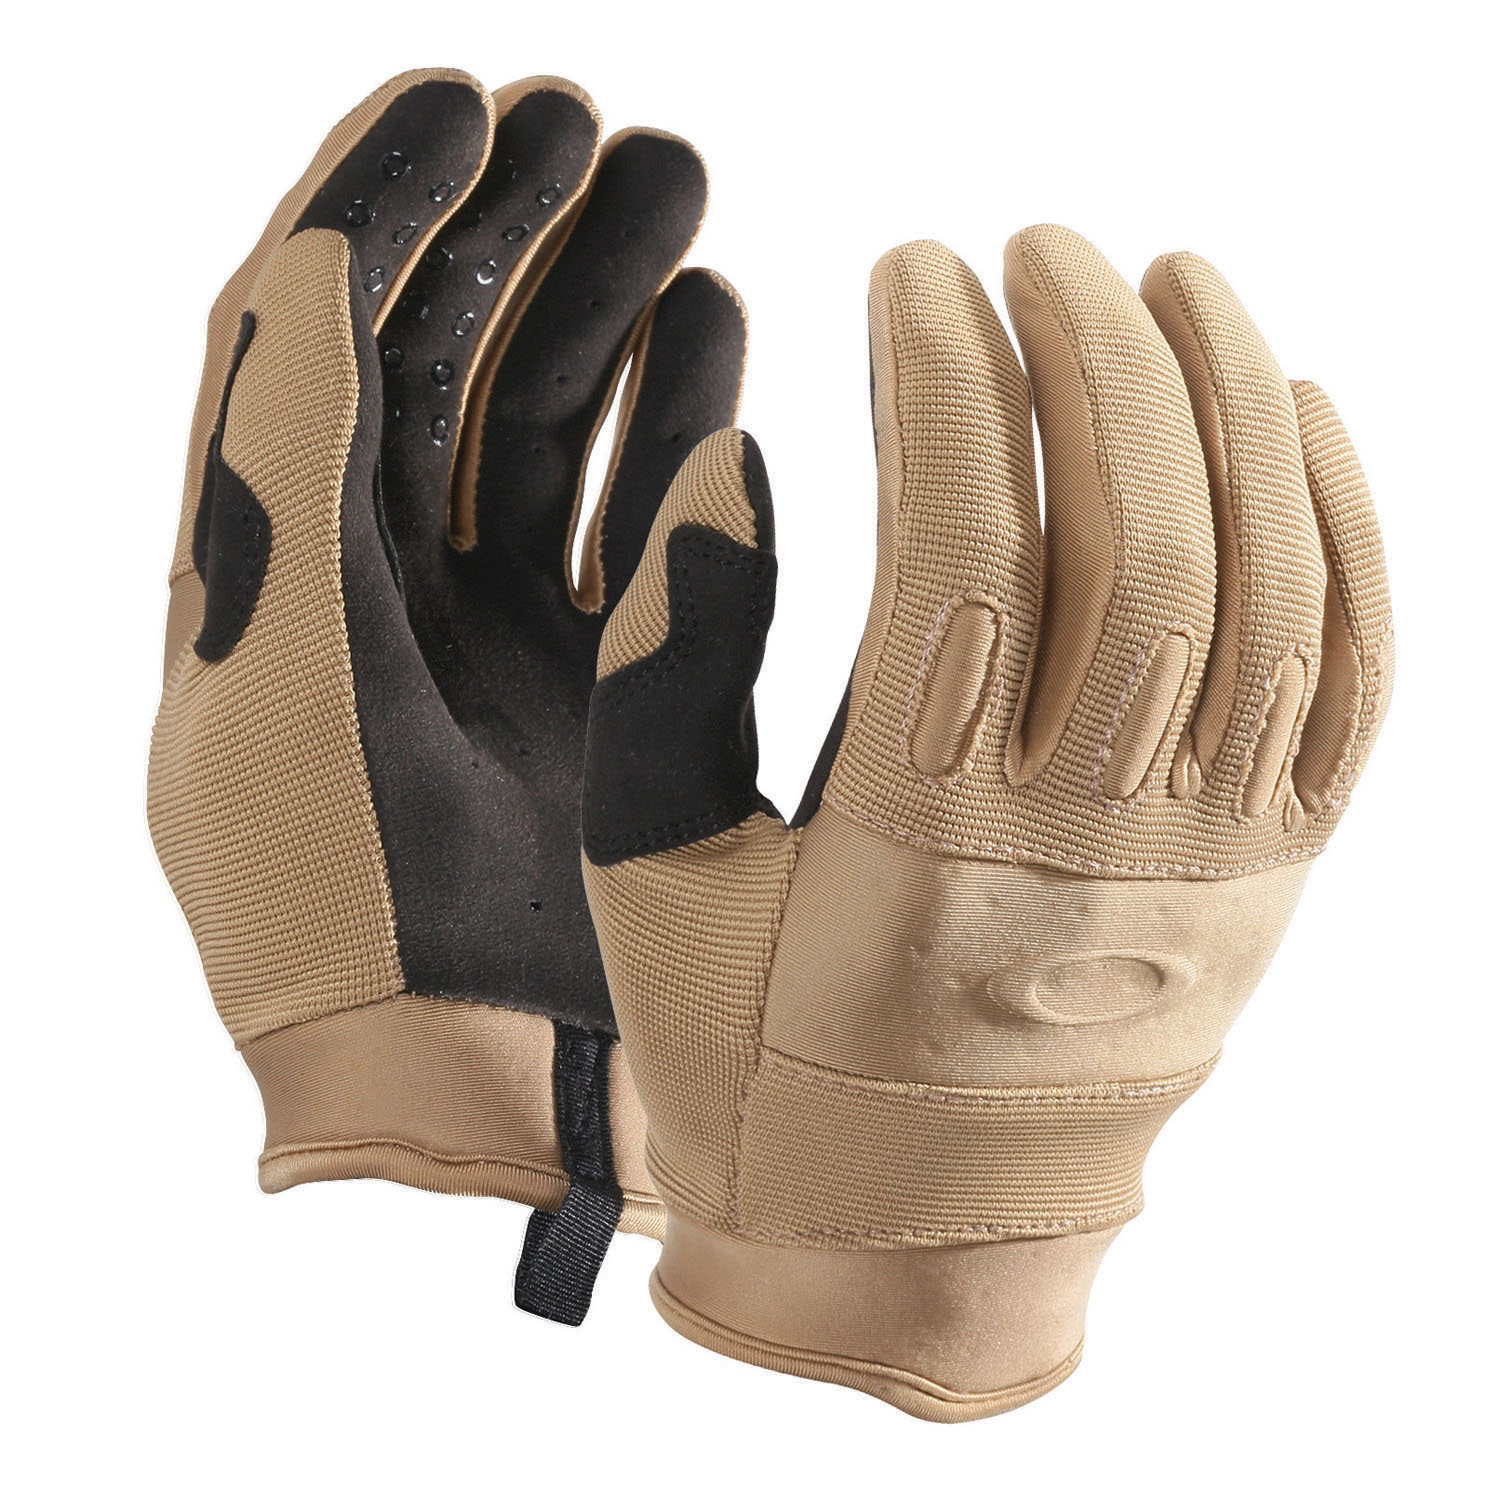 0625706bca Tactical Oakley Gloves Si « Heritage Malta